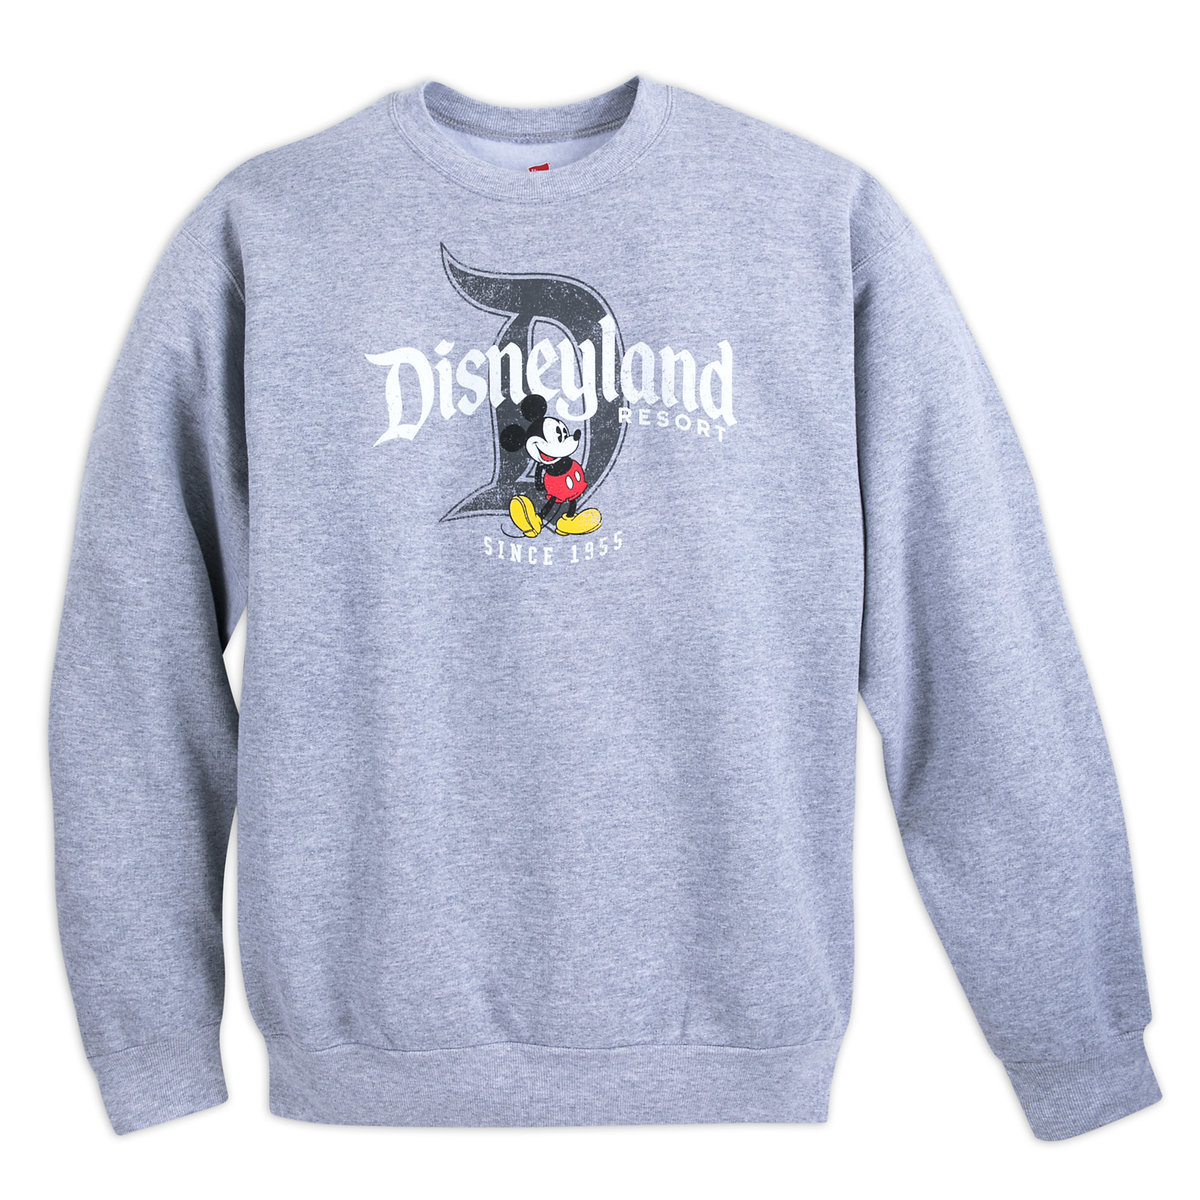 d8438b5fb0d Product Image of Mickey Mouse with Disneyland Fleece Sweatshirt for Adults    1